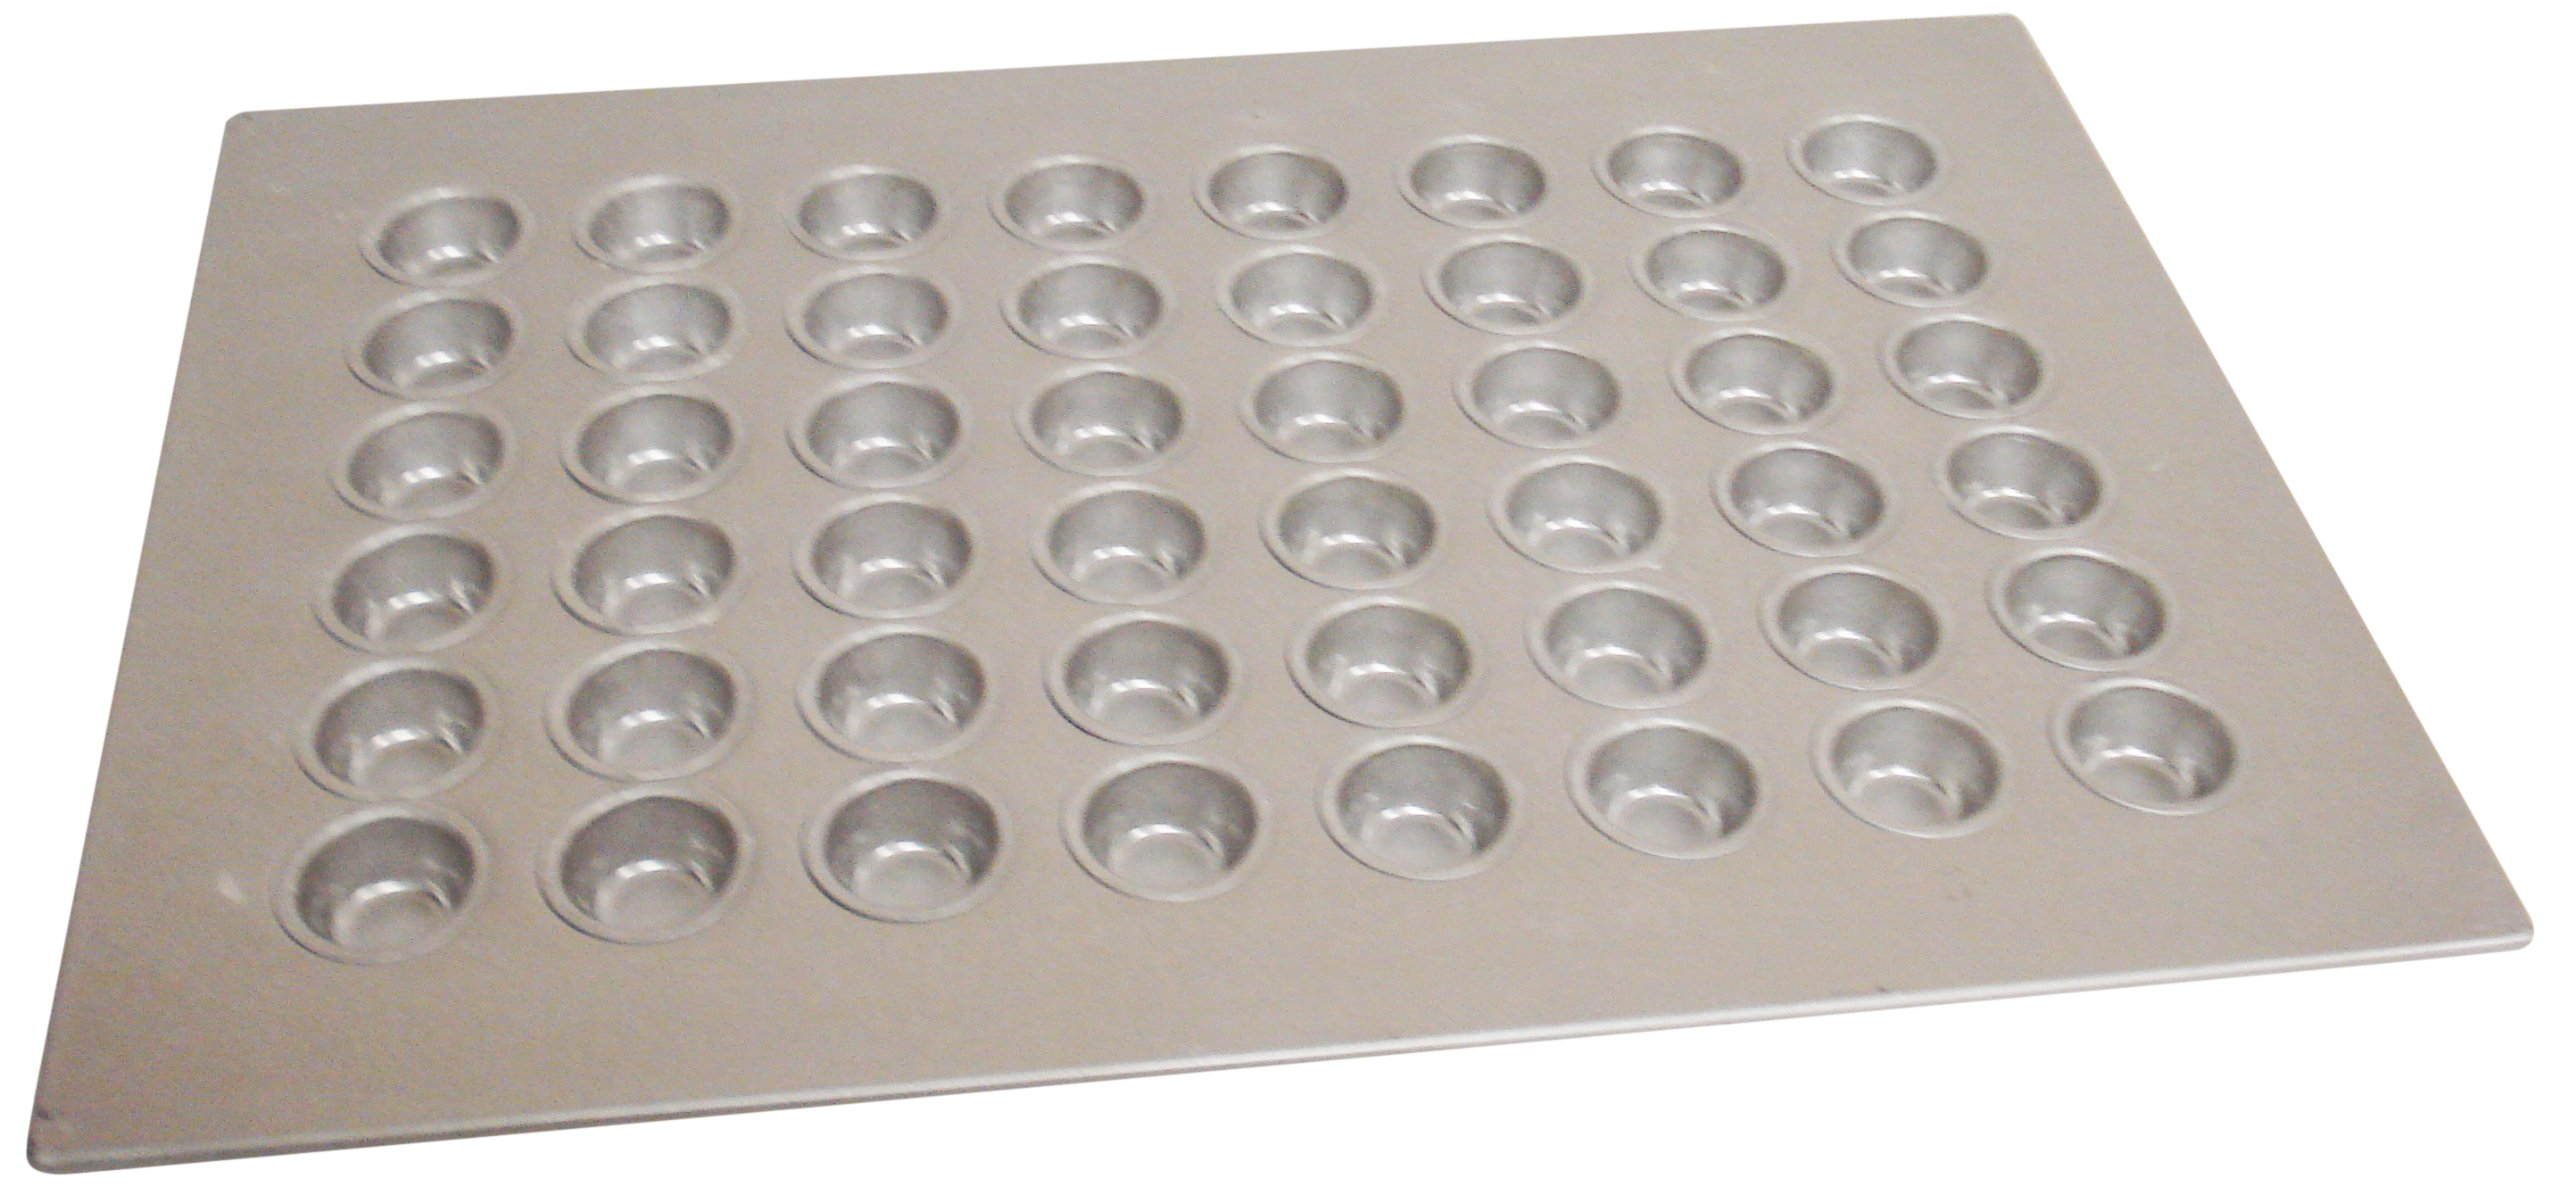 Magna Industries 15130 22-Gauge Aluminized Steel Mini Muffin Pan, 1-7/8'' Diameter, 6 x 8 Cups Layout (Pack of 6)